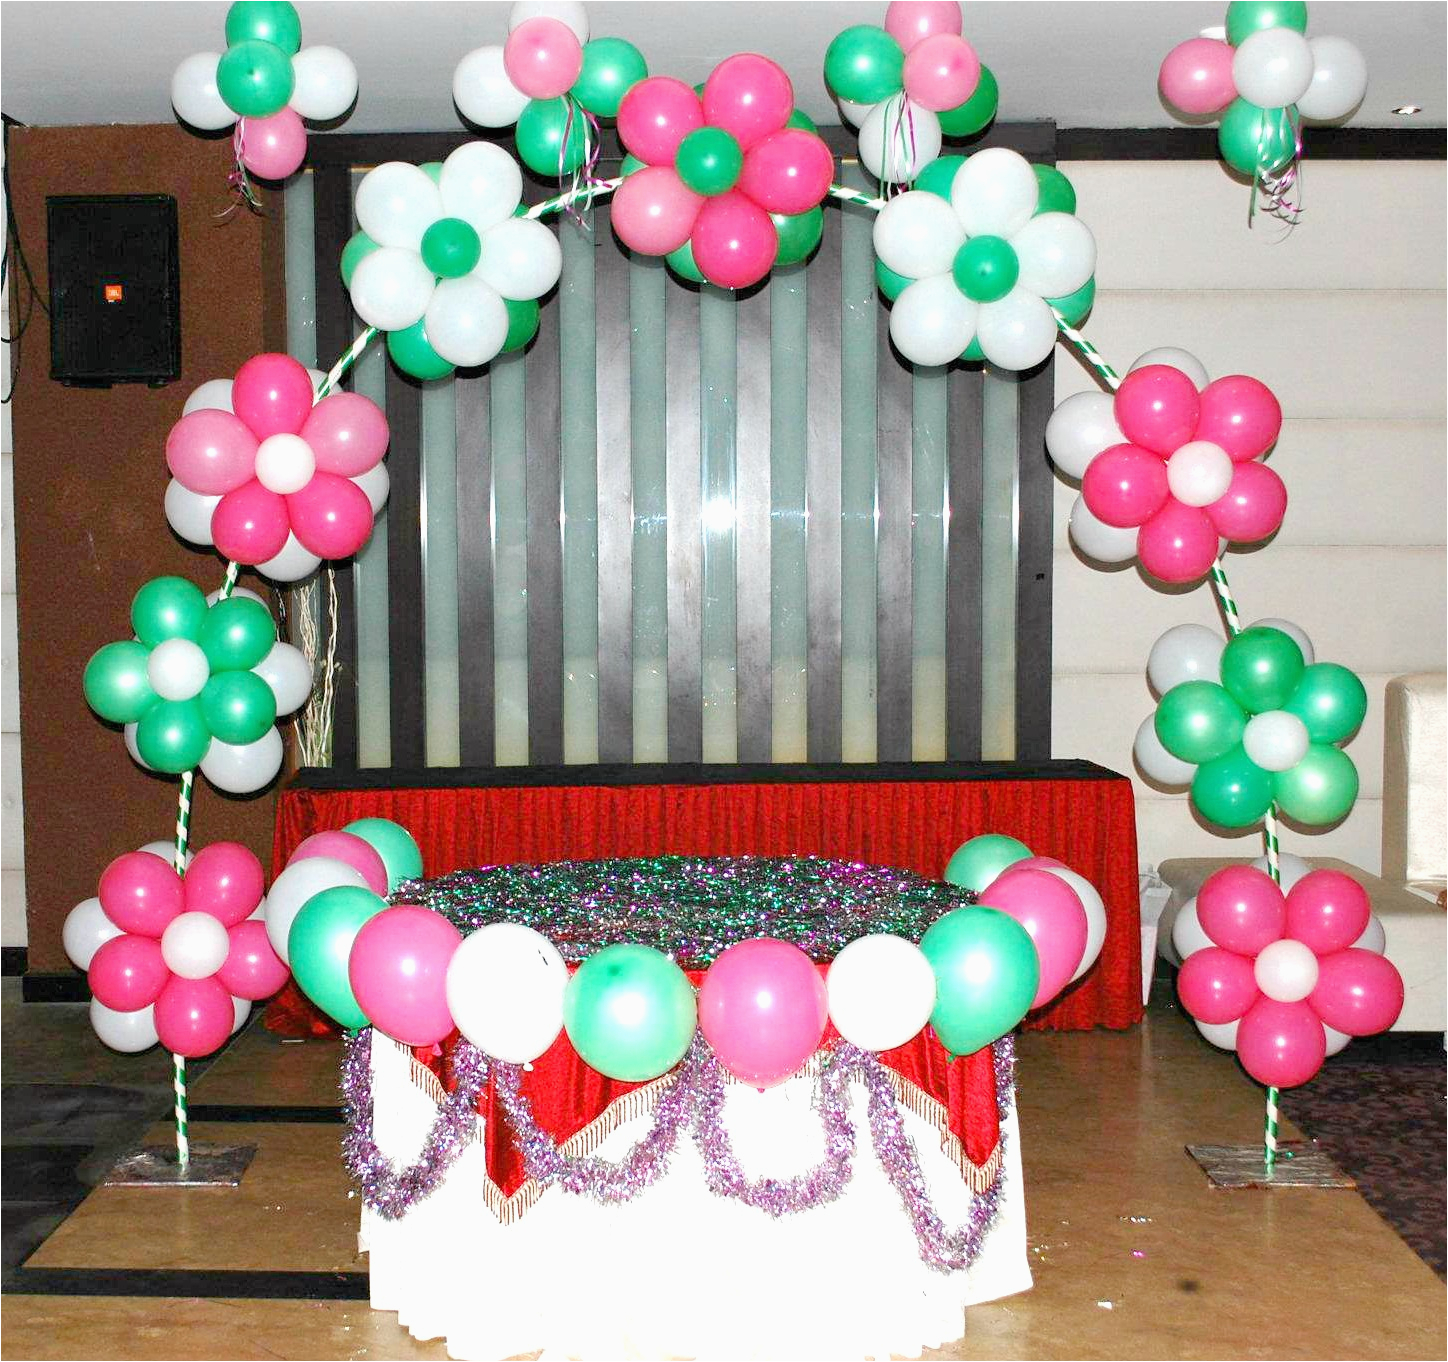 balloon decoration ideas that will inflate the fun for your childs birthday party